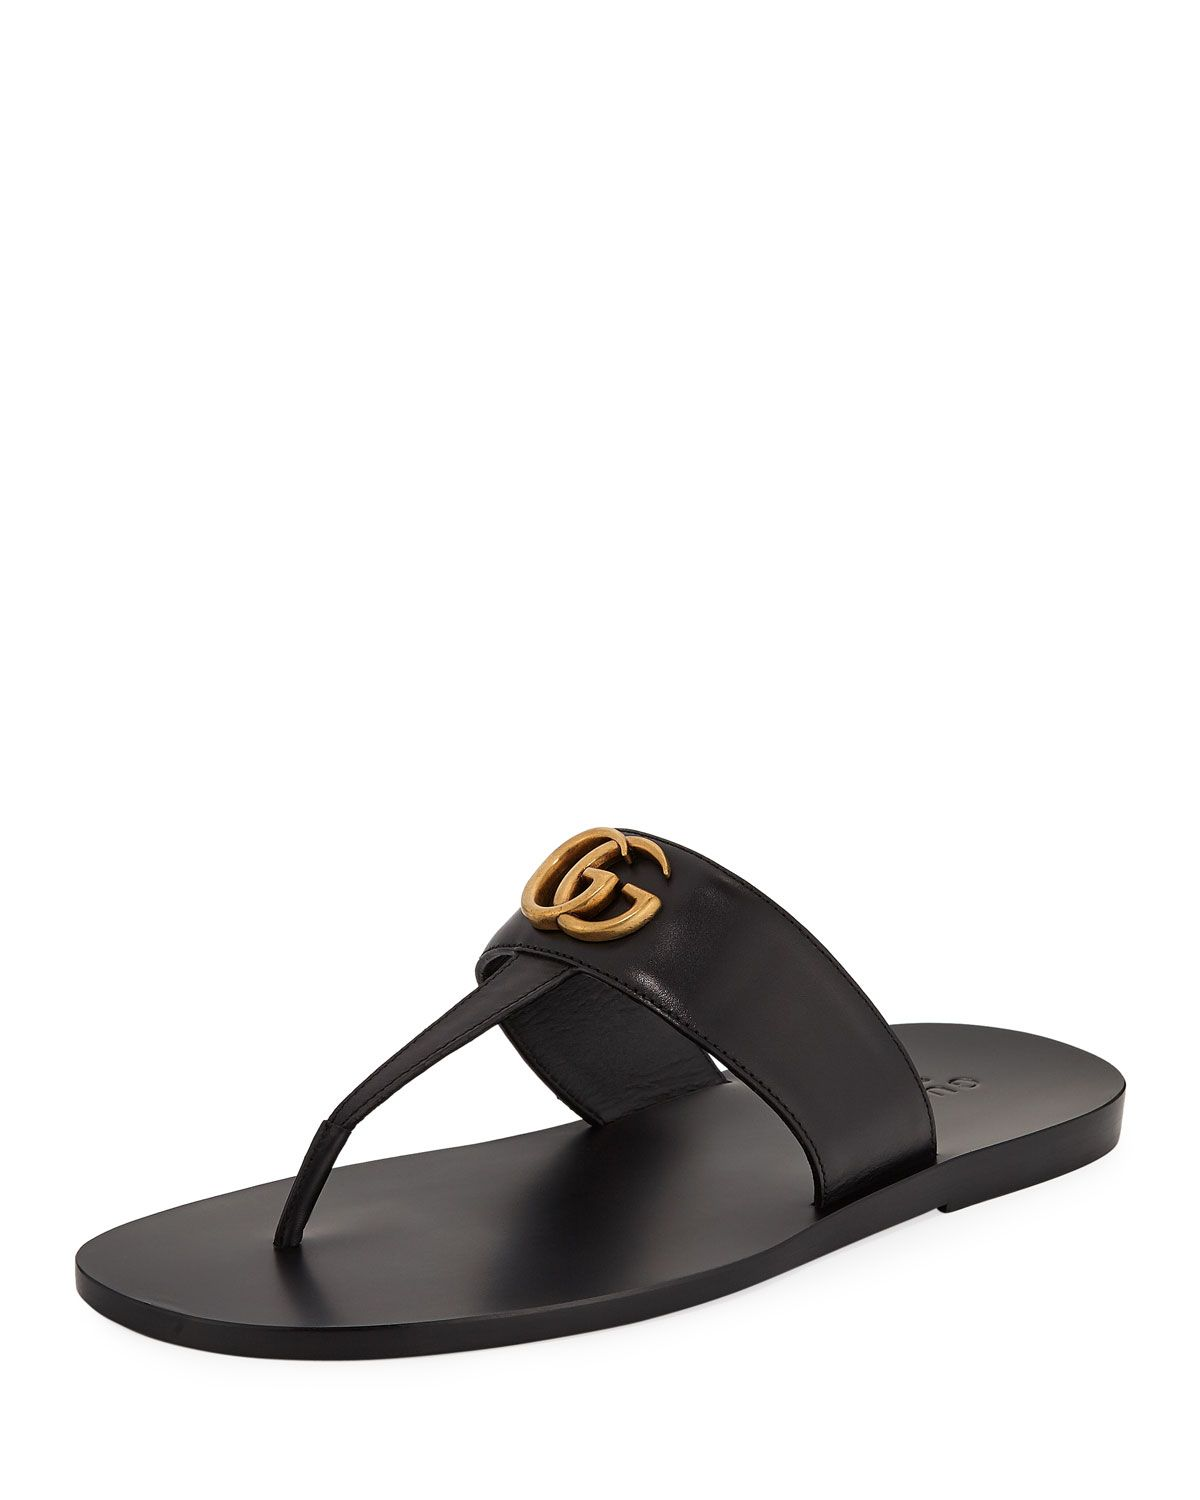 d892db403511 GUCCI MEN S GG-STUD LEATHER THONG SANDALS.  gucci  shoes